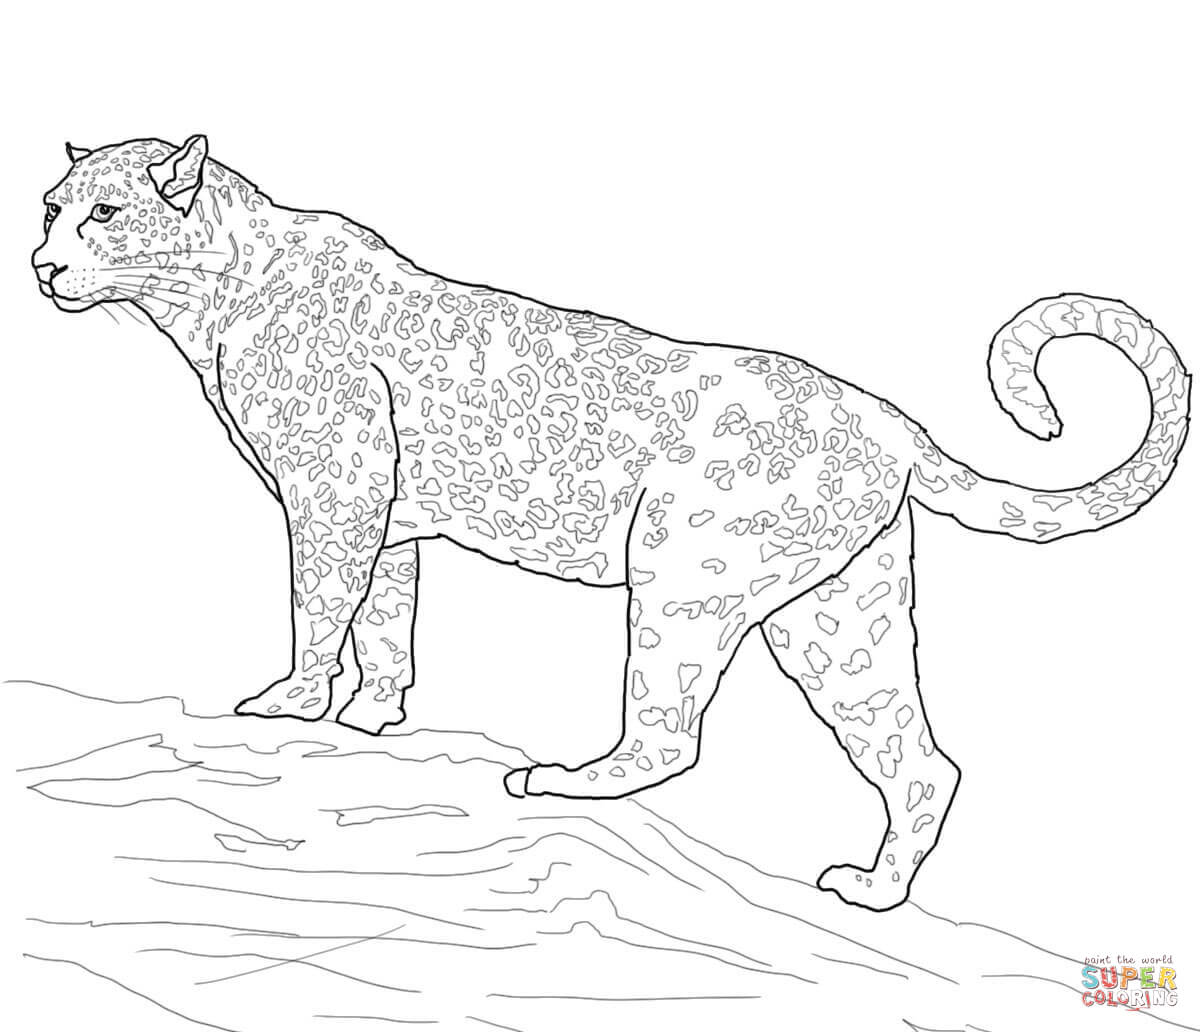 Big Cat coloring #6, Download drawings